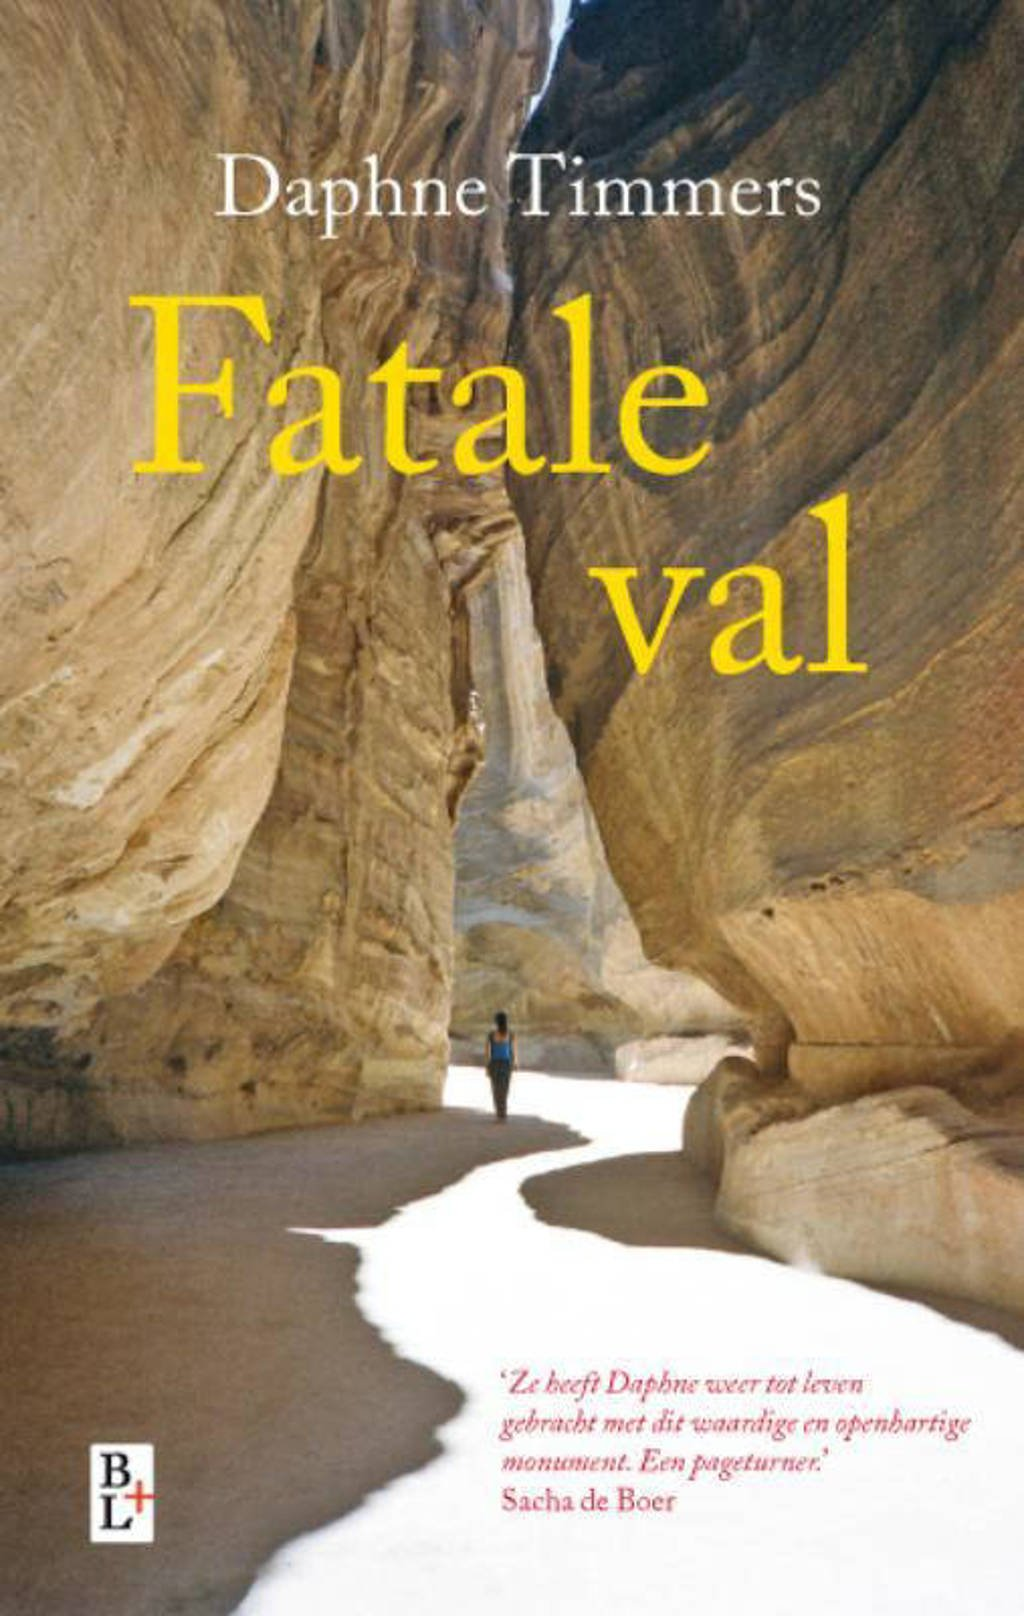 Fatale val - Daphne Timmers